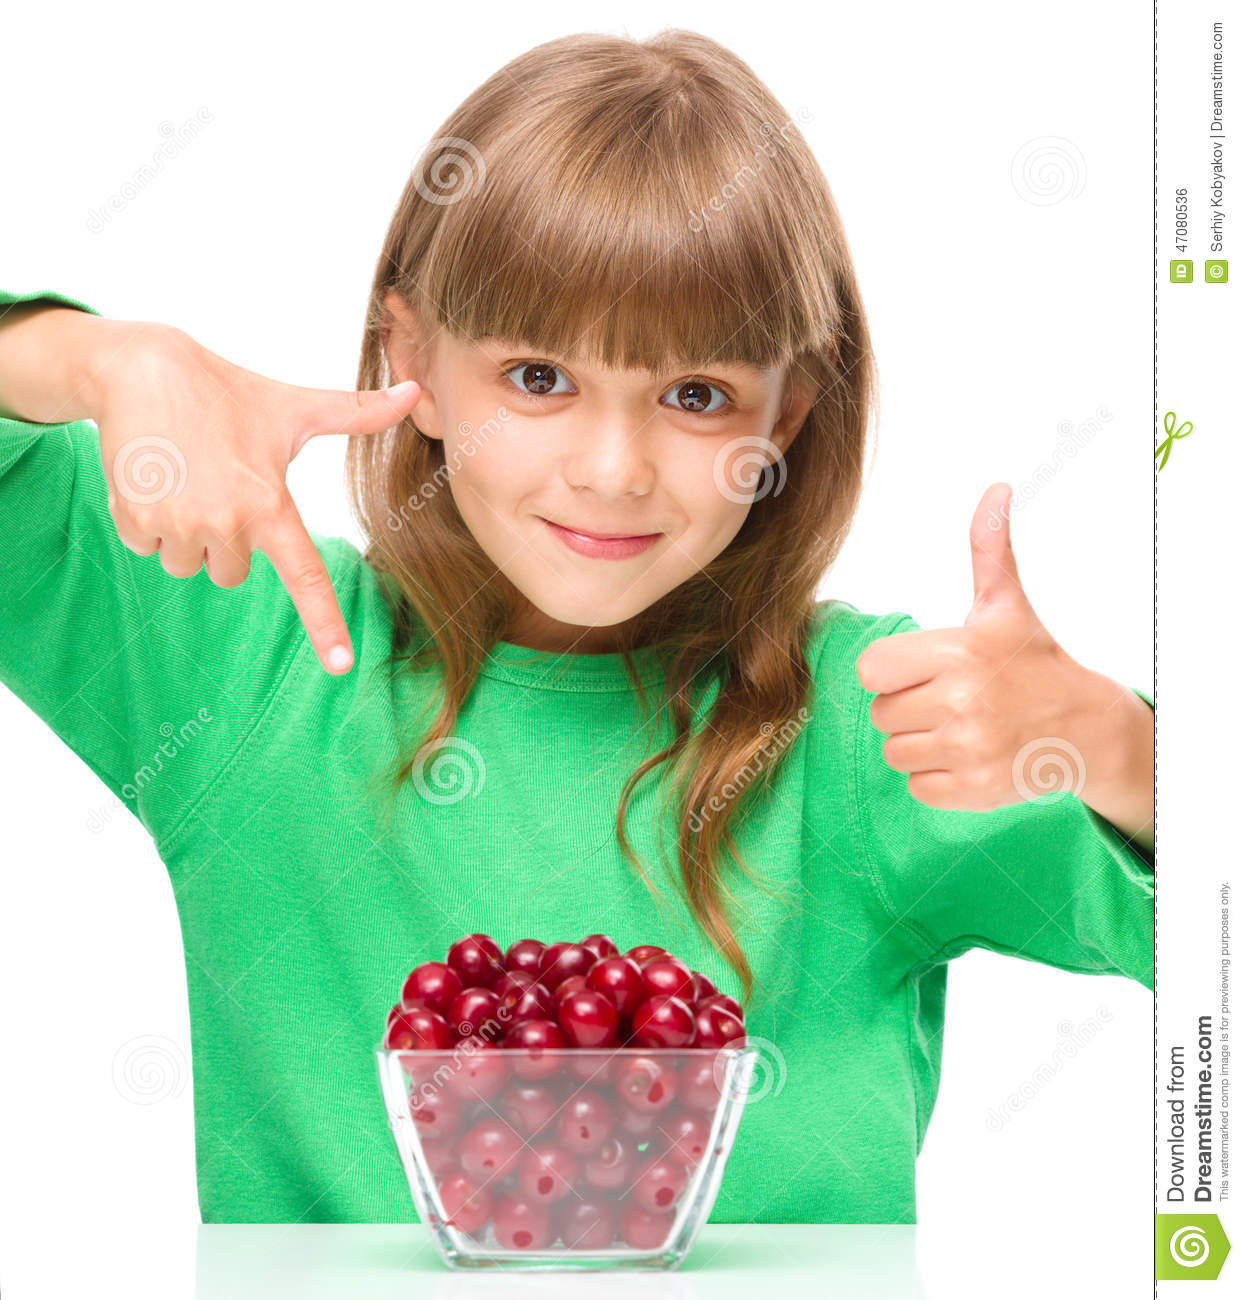 Cute girl is eating cherries showing thumb up sigh